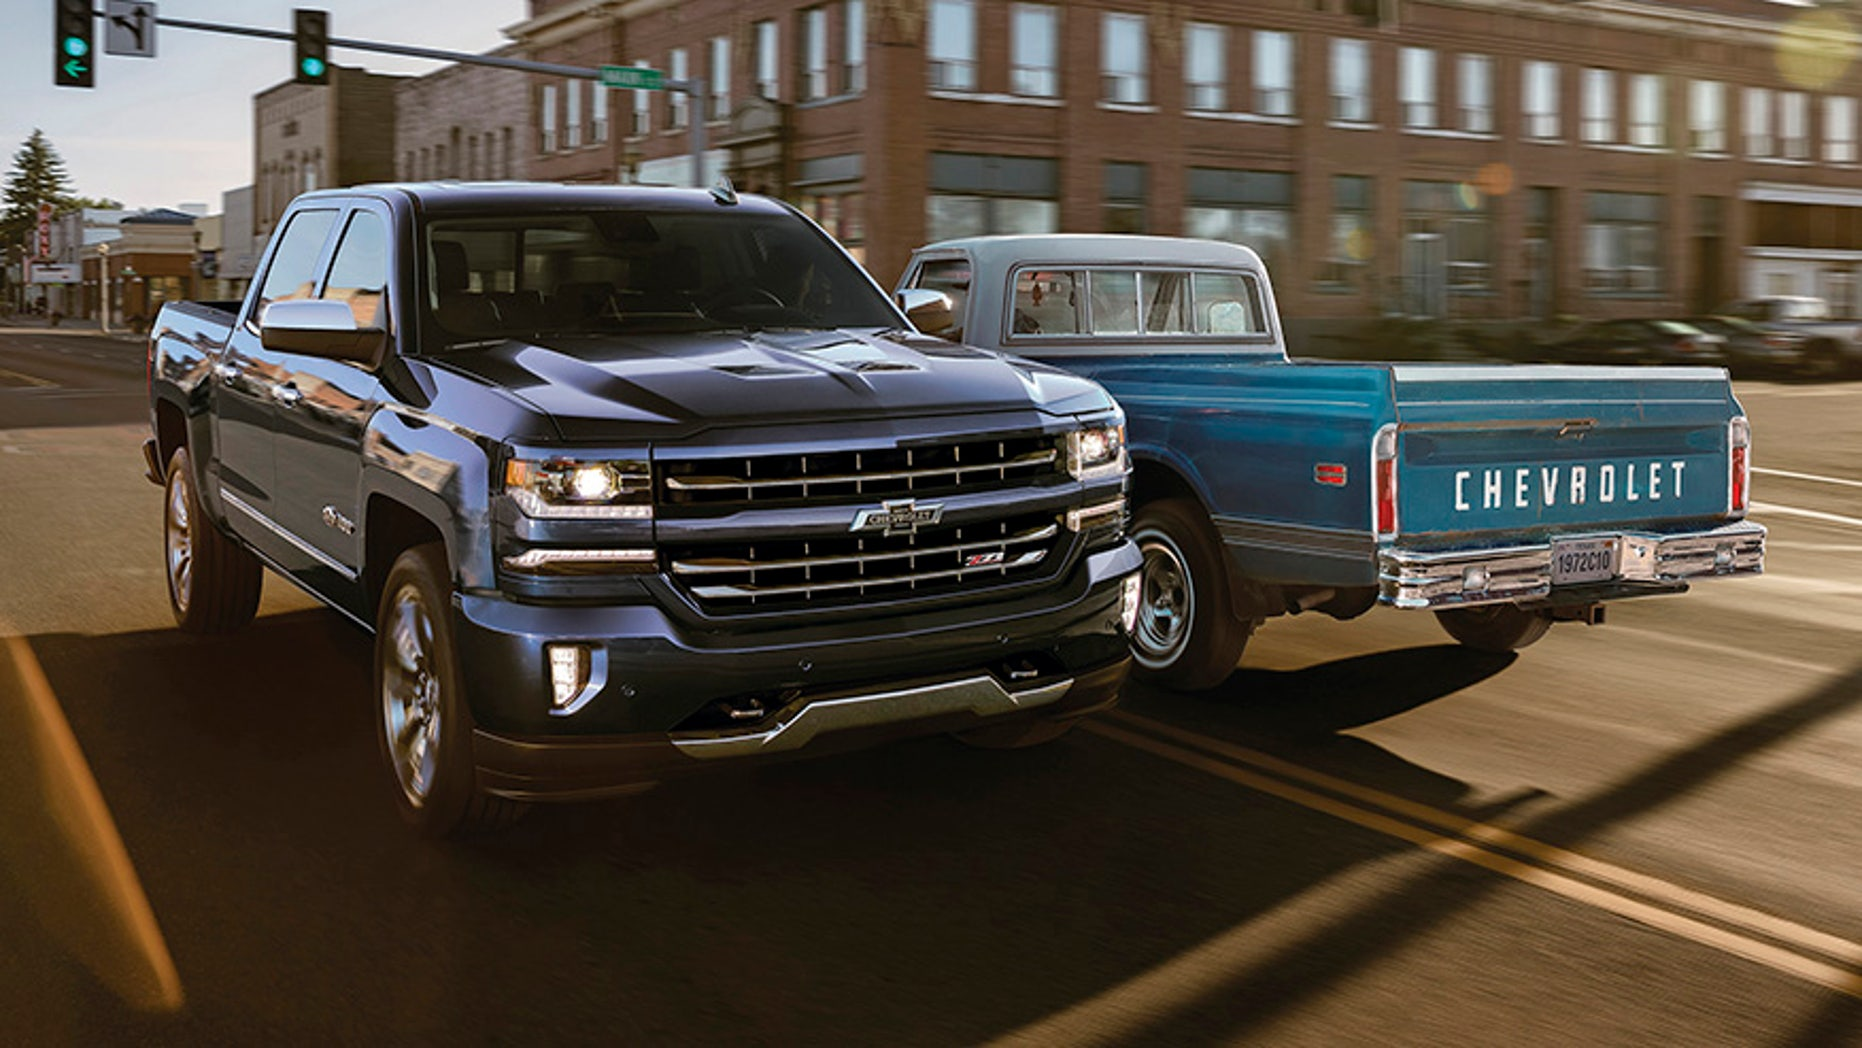 Chevrolet Special Edition Trucks >> Chevrolet Celebrating 100 Years Of Trucks With Special